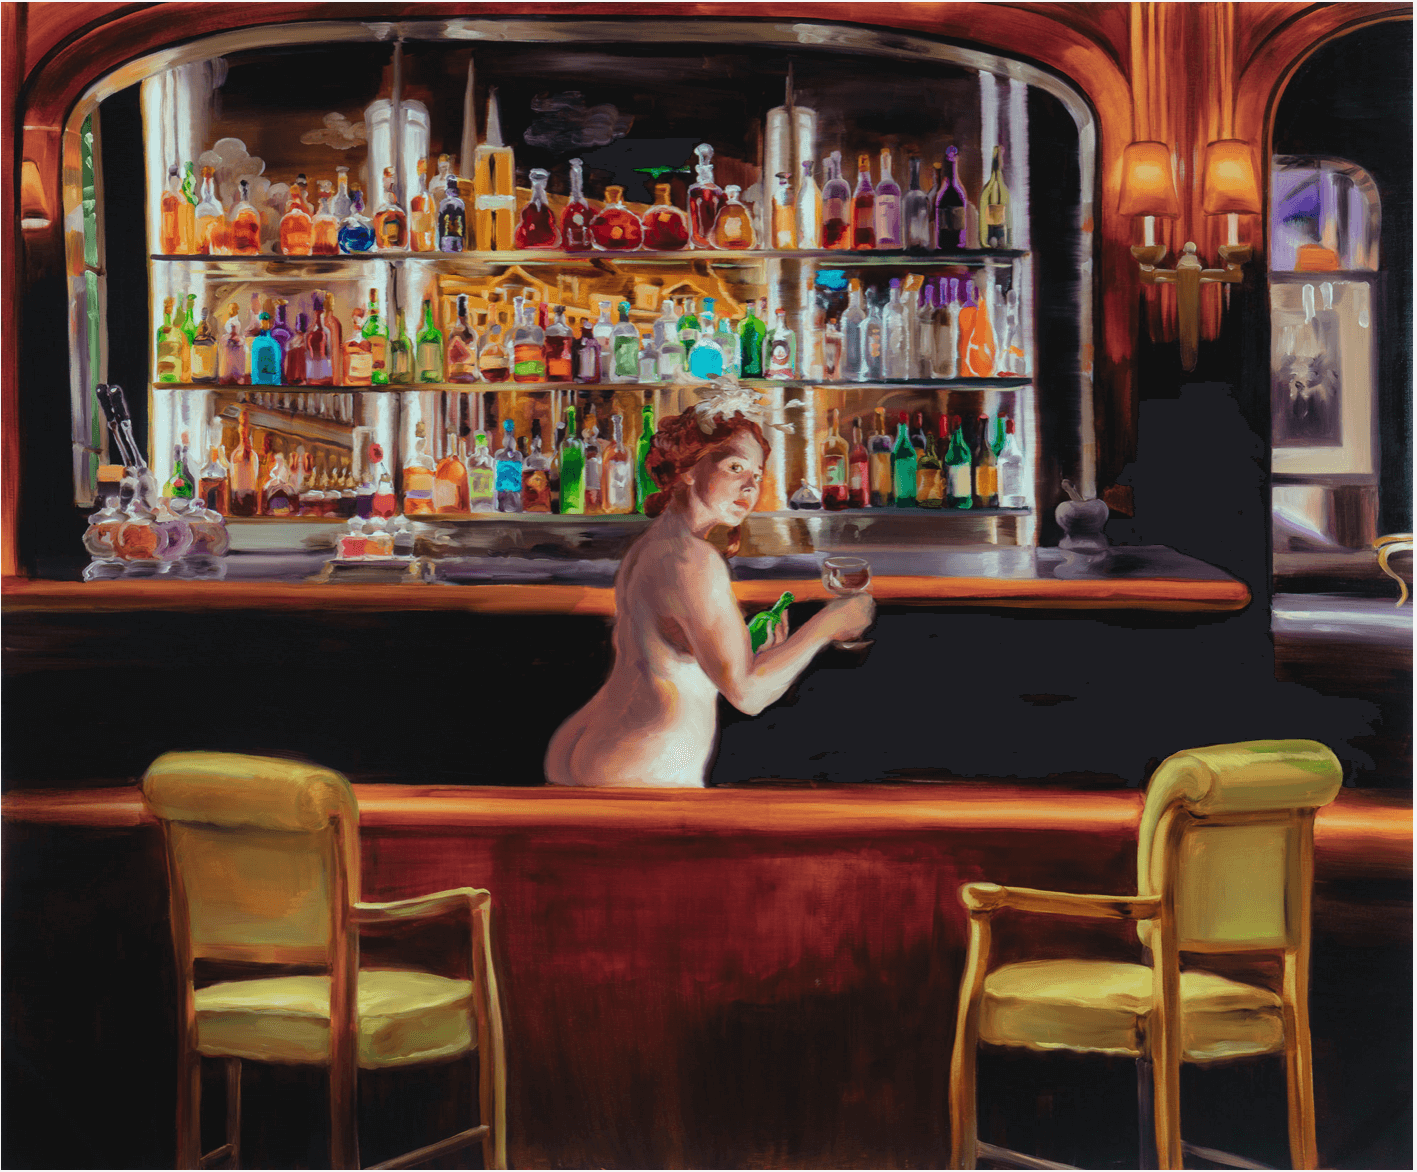 Painting of nude woman behind bar by international artist Sala Lieber